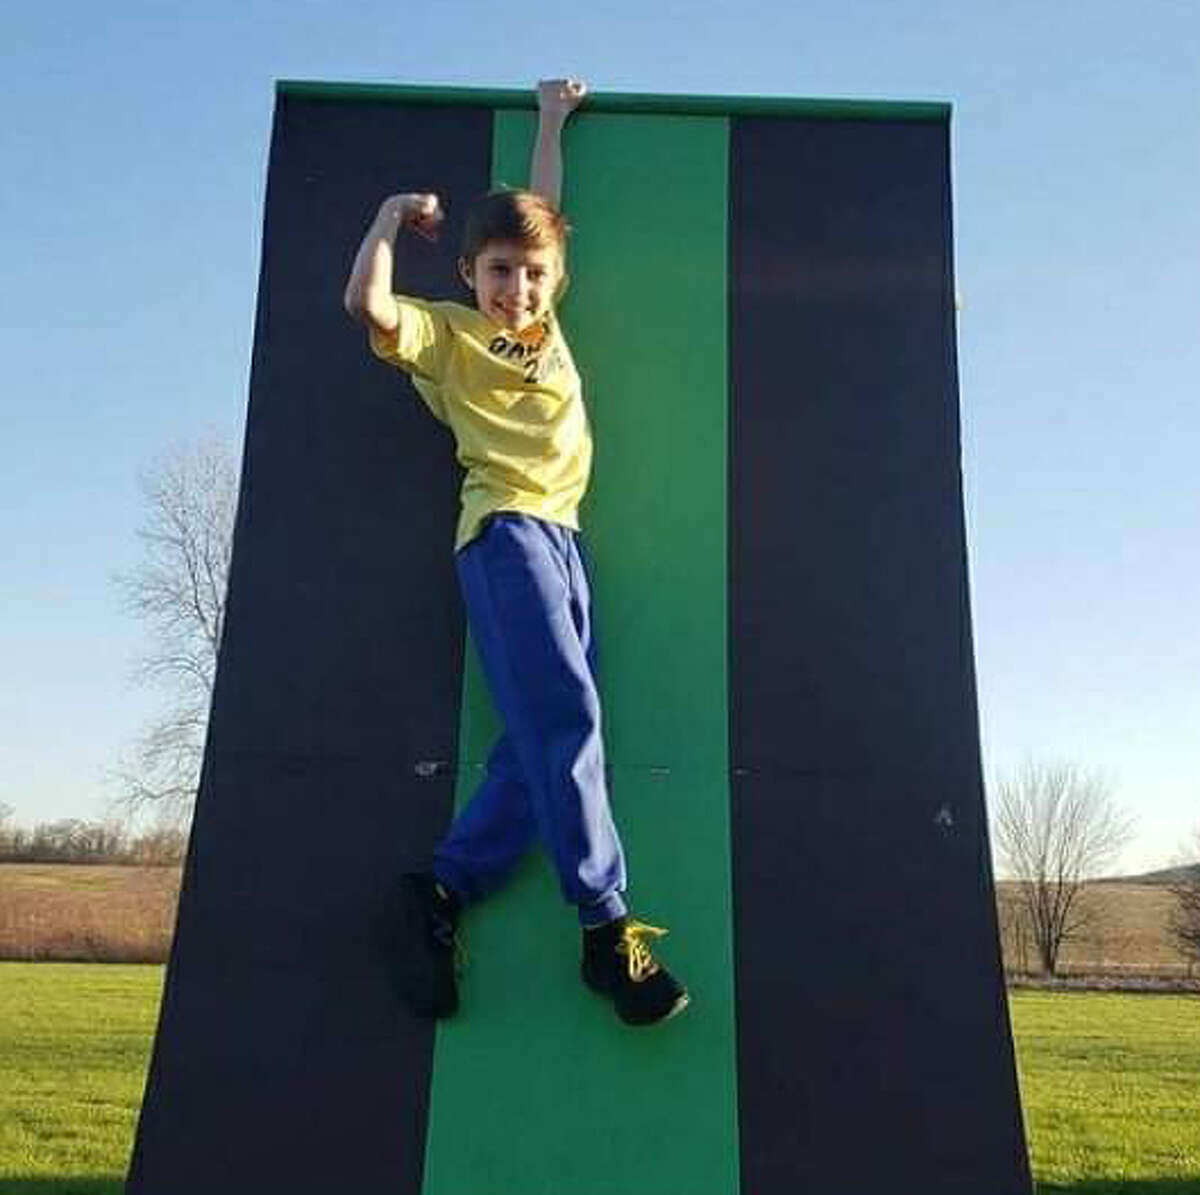 """Colton Davis, 9, of Edwardsville, will appear in Thursday's episode of """"American Ninja Warrior Junior,"""" which will be streamed on the Peacock network."""